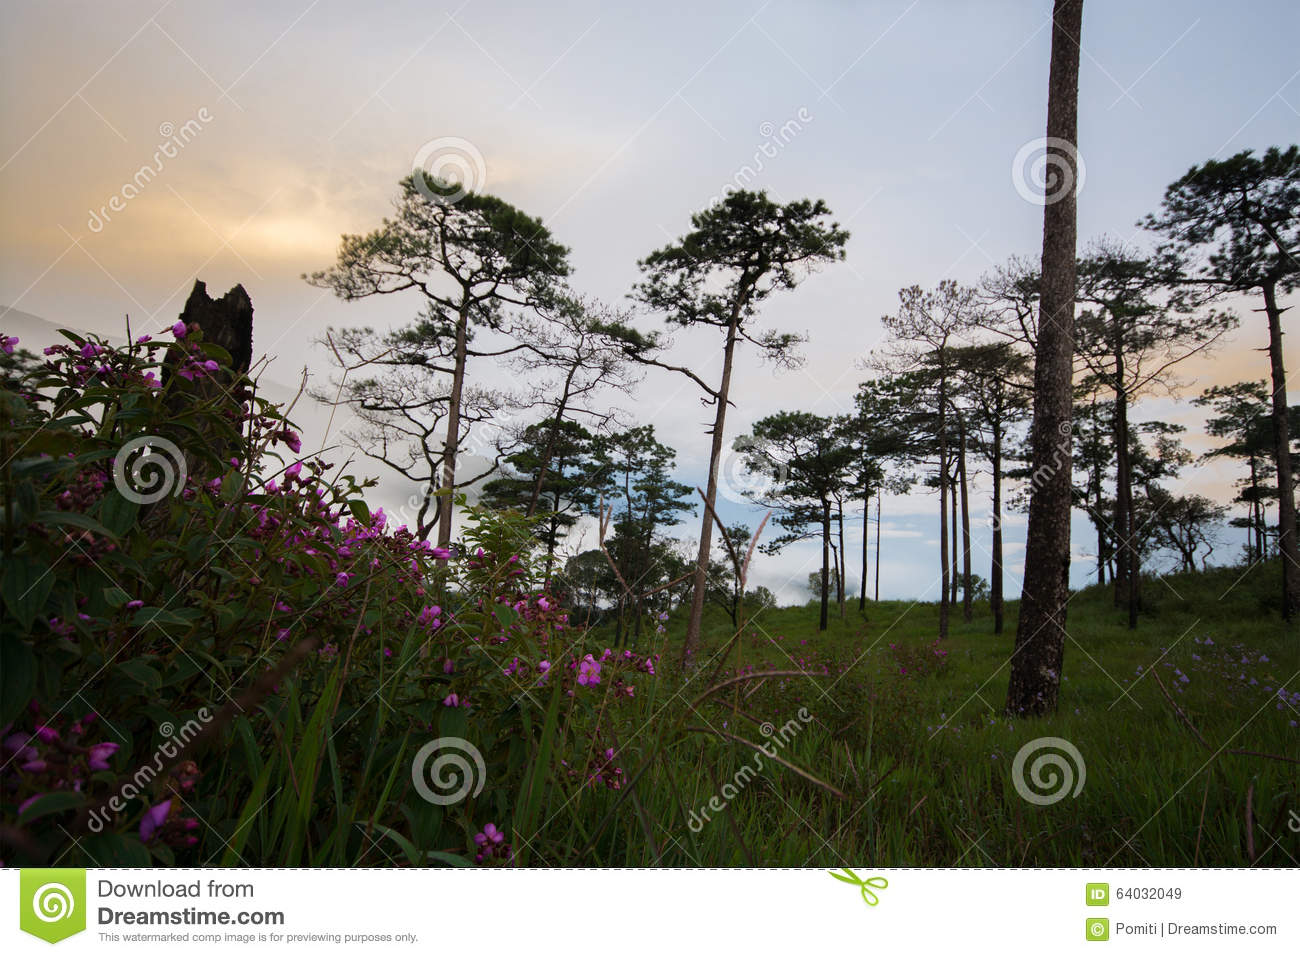 Pink flower in meadow and pine trees stock image image of flower download pink flower in meadow and pine trees stock image image of flower evening mightylinksfo